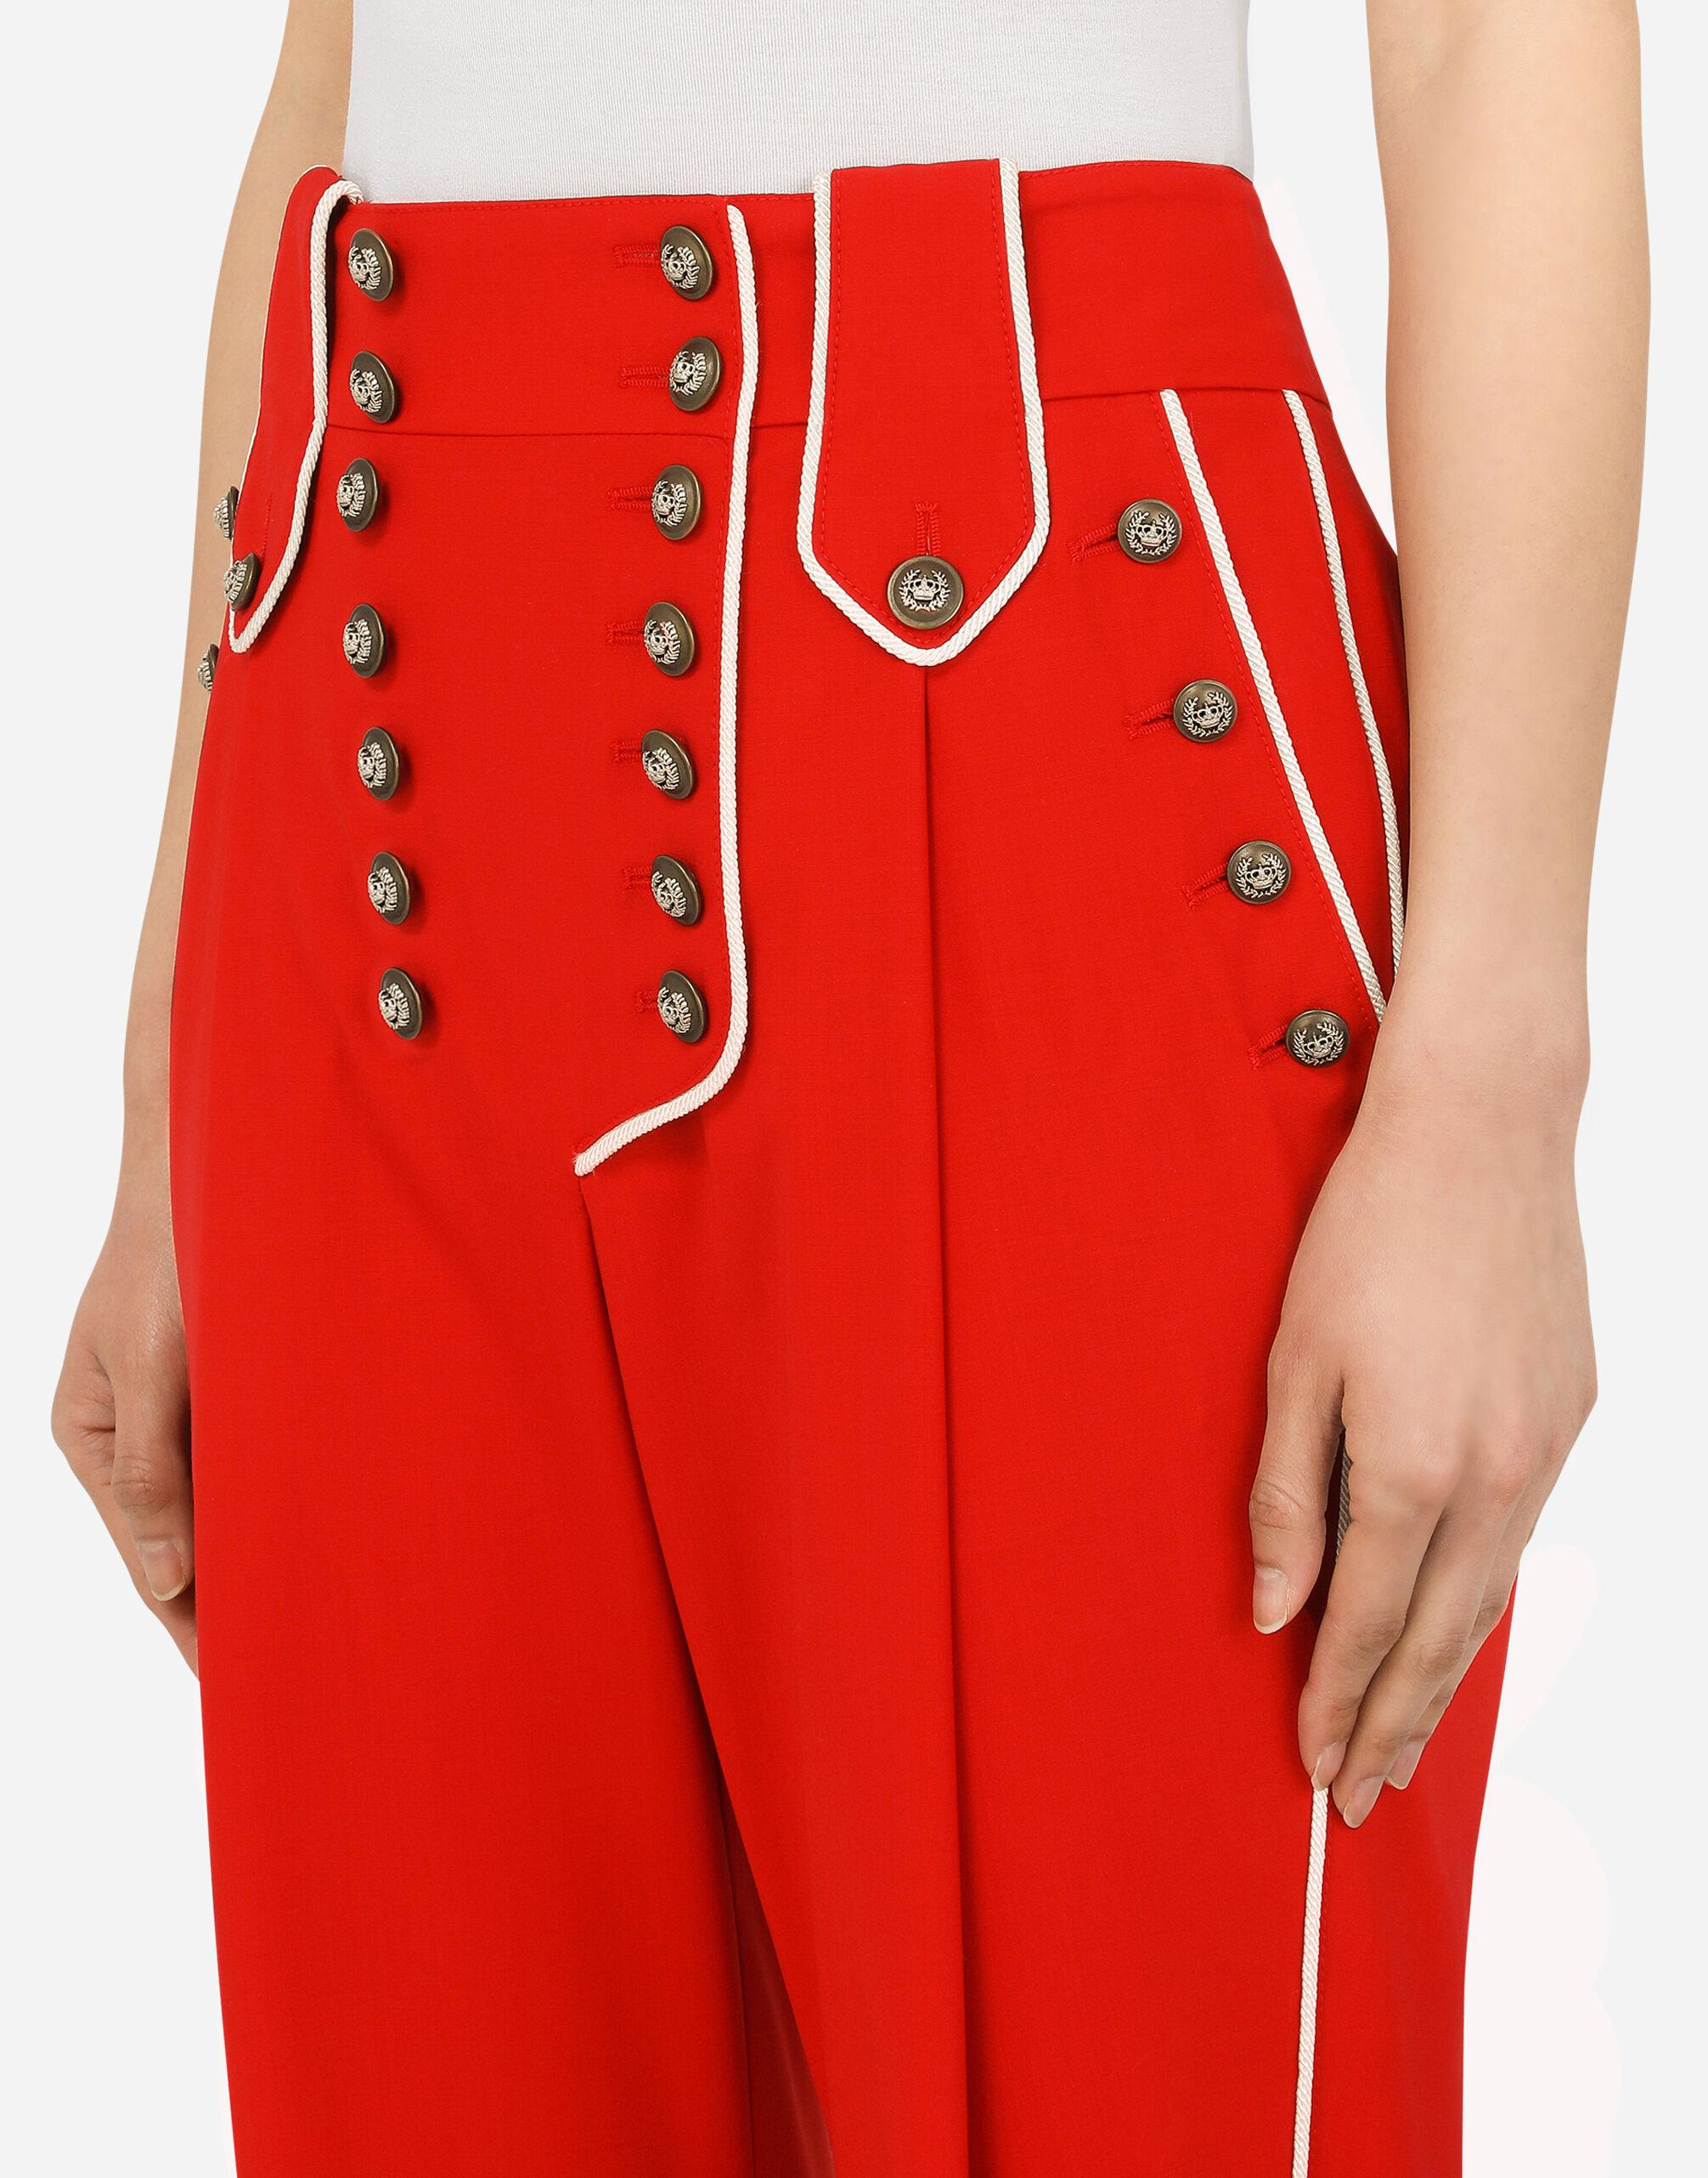 High-waisted woolen pants with heraldic buttons 4